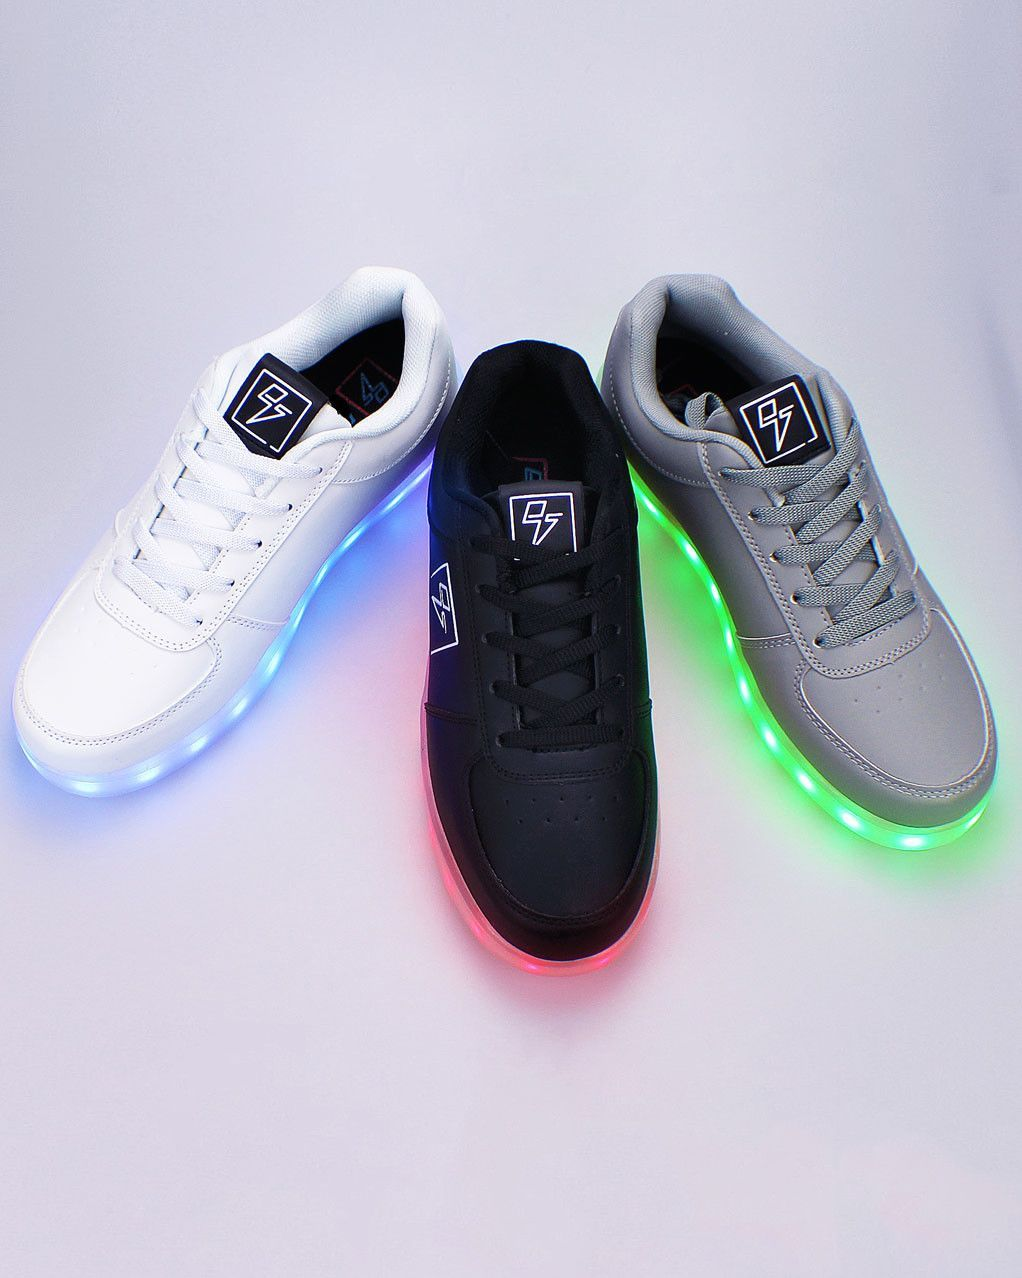 Light Up LED Shoes Bolt from Electric Styles | Light up